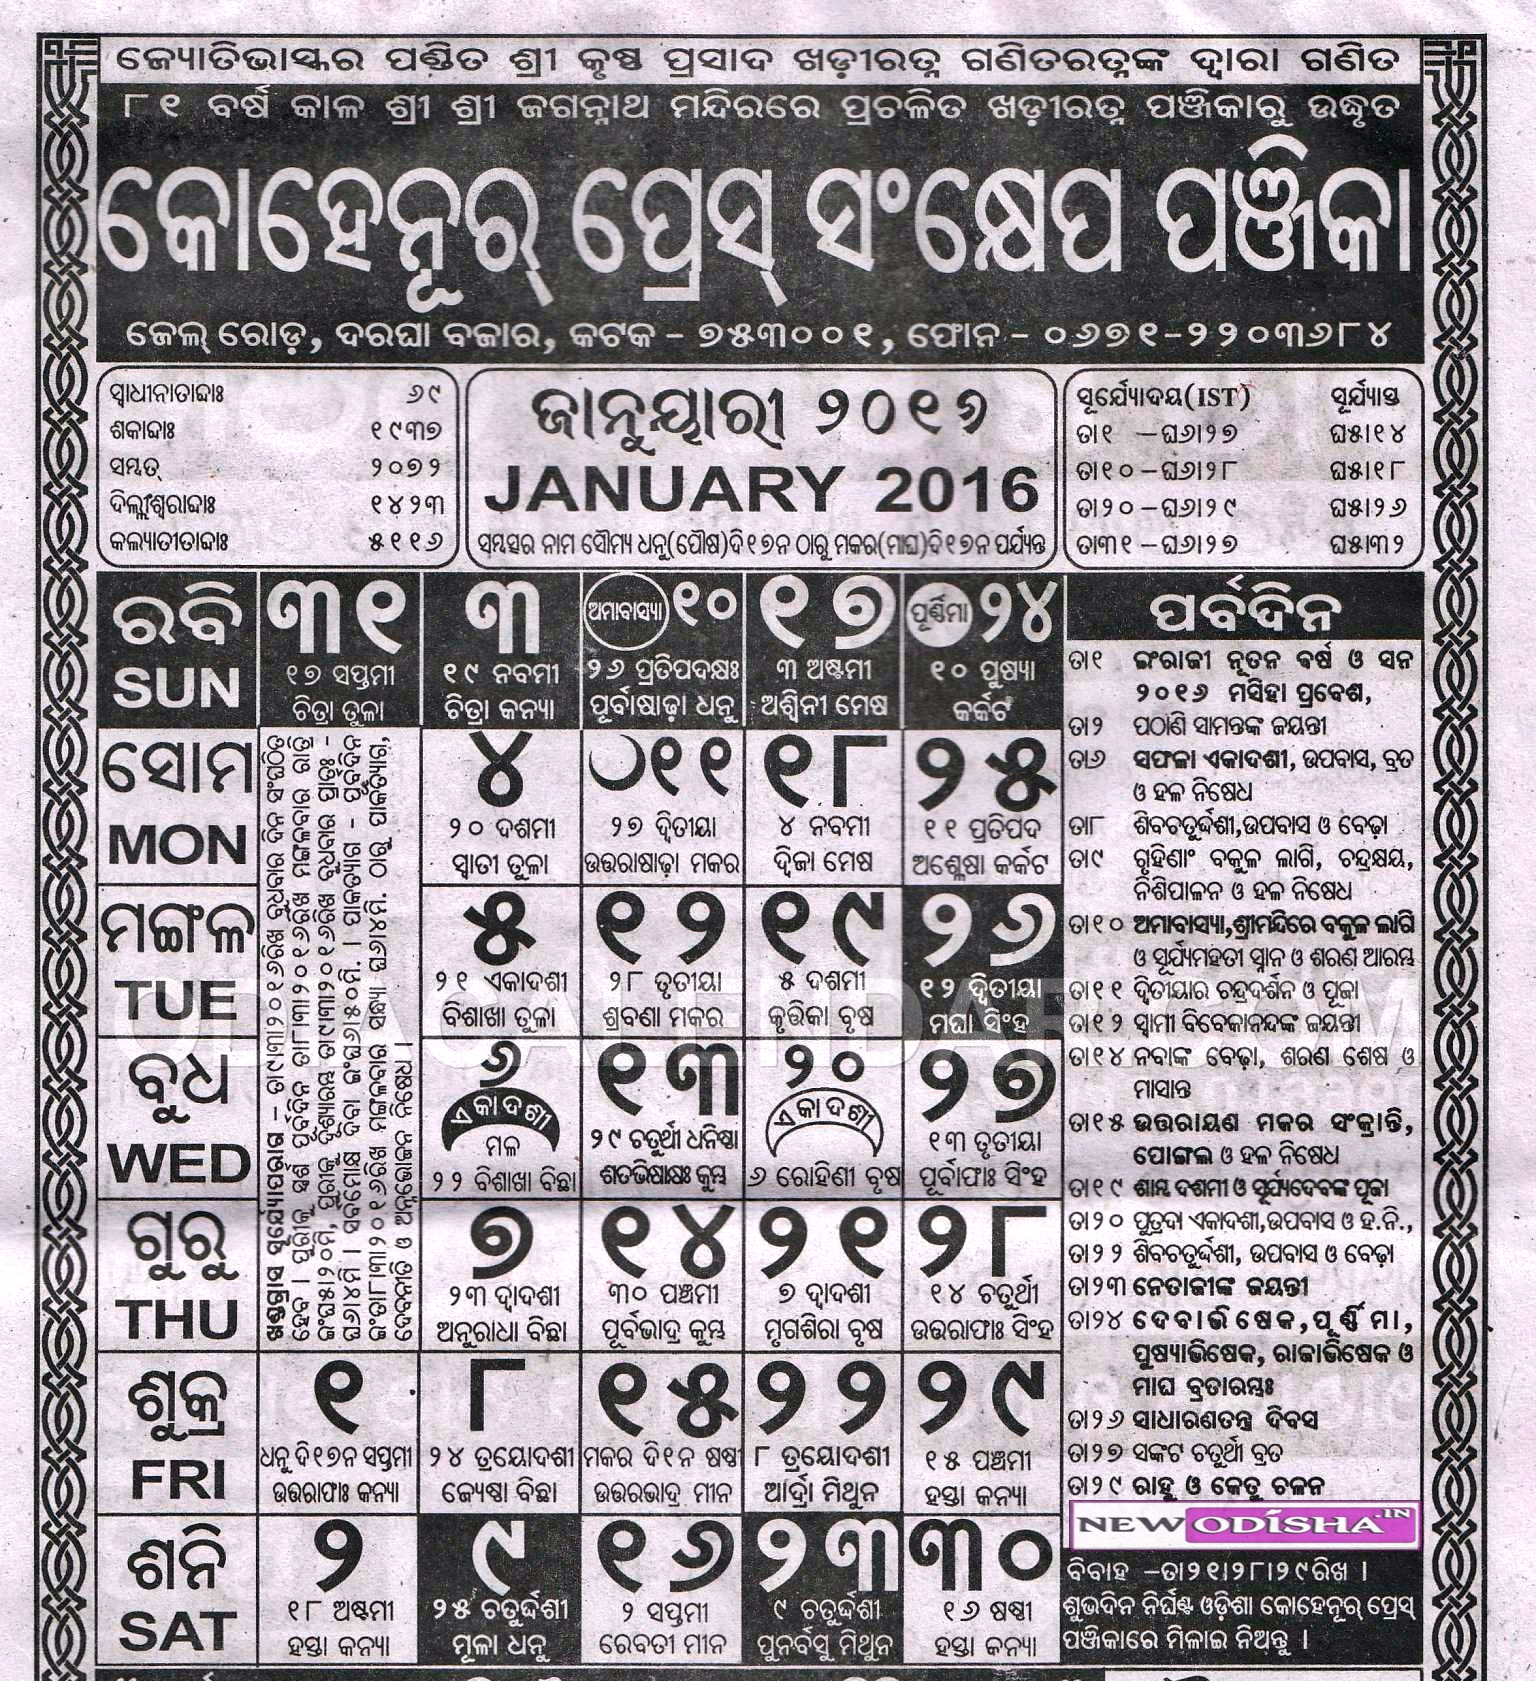 January 2016 Odia Kohinoor Calendar and Holiday List